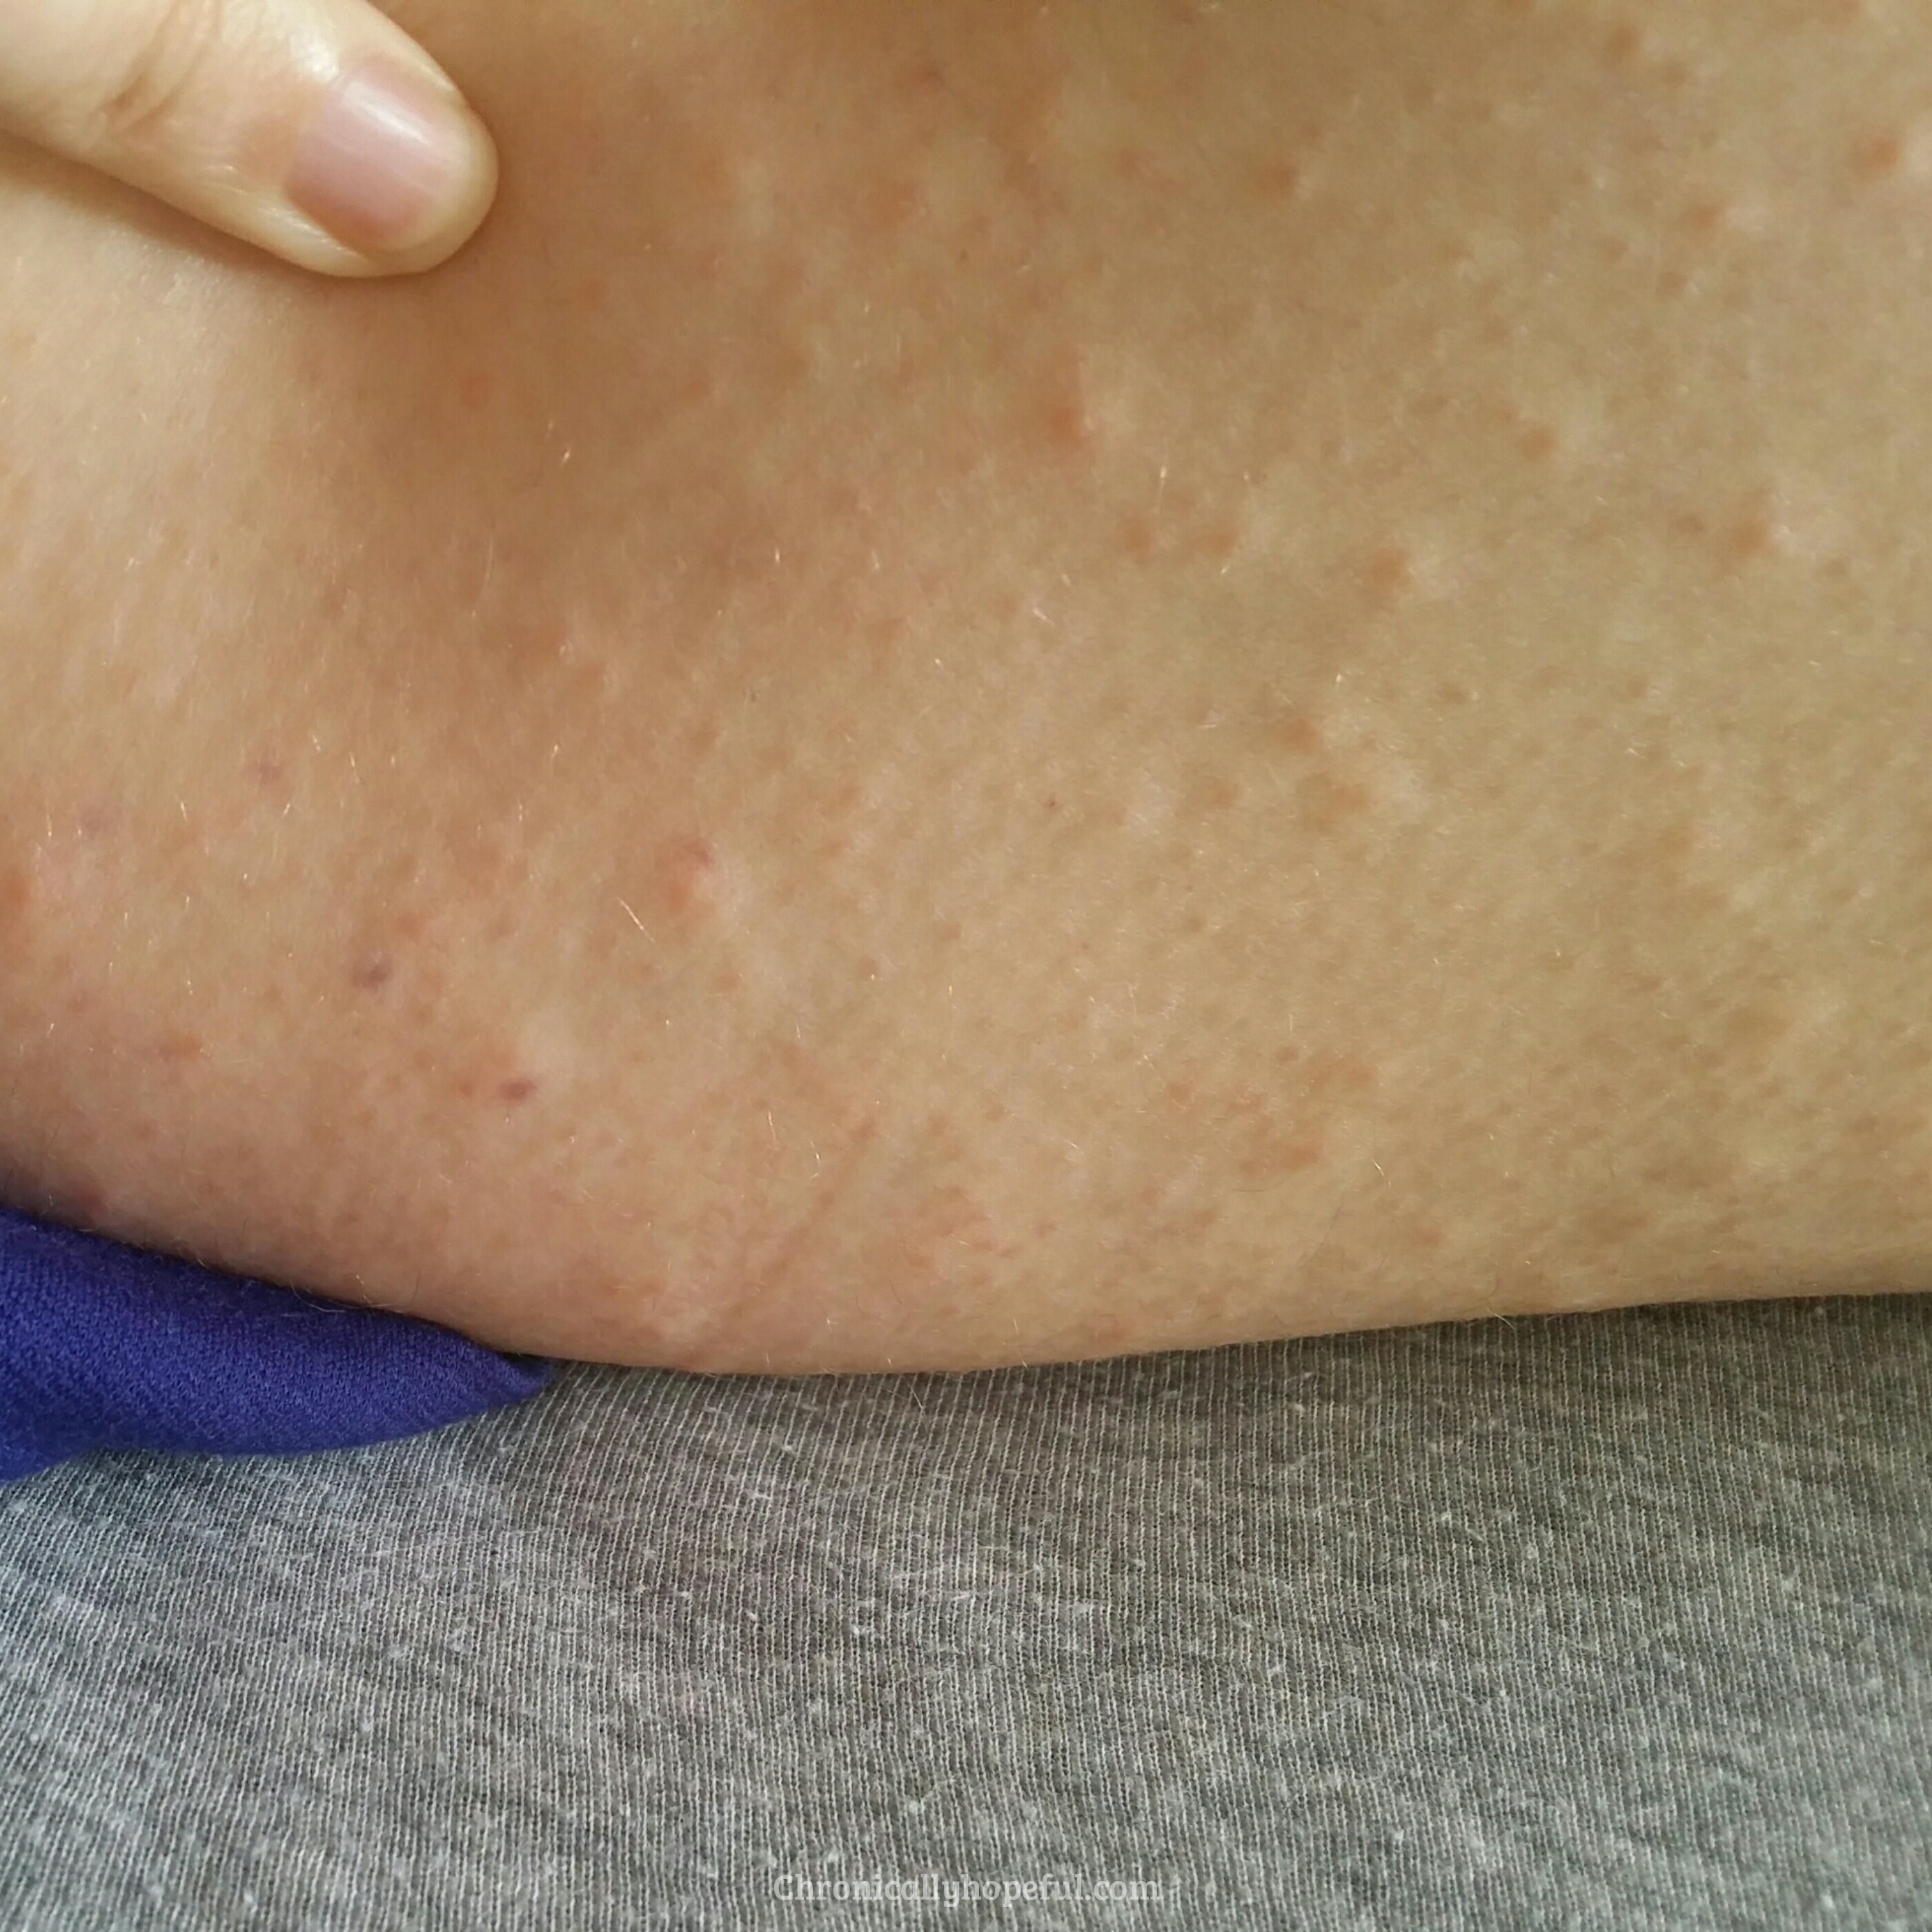 Red Spots All Over, Histamine Intolerance, Chronically Hopeful